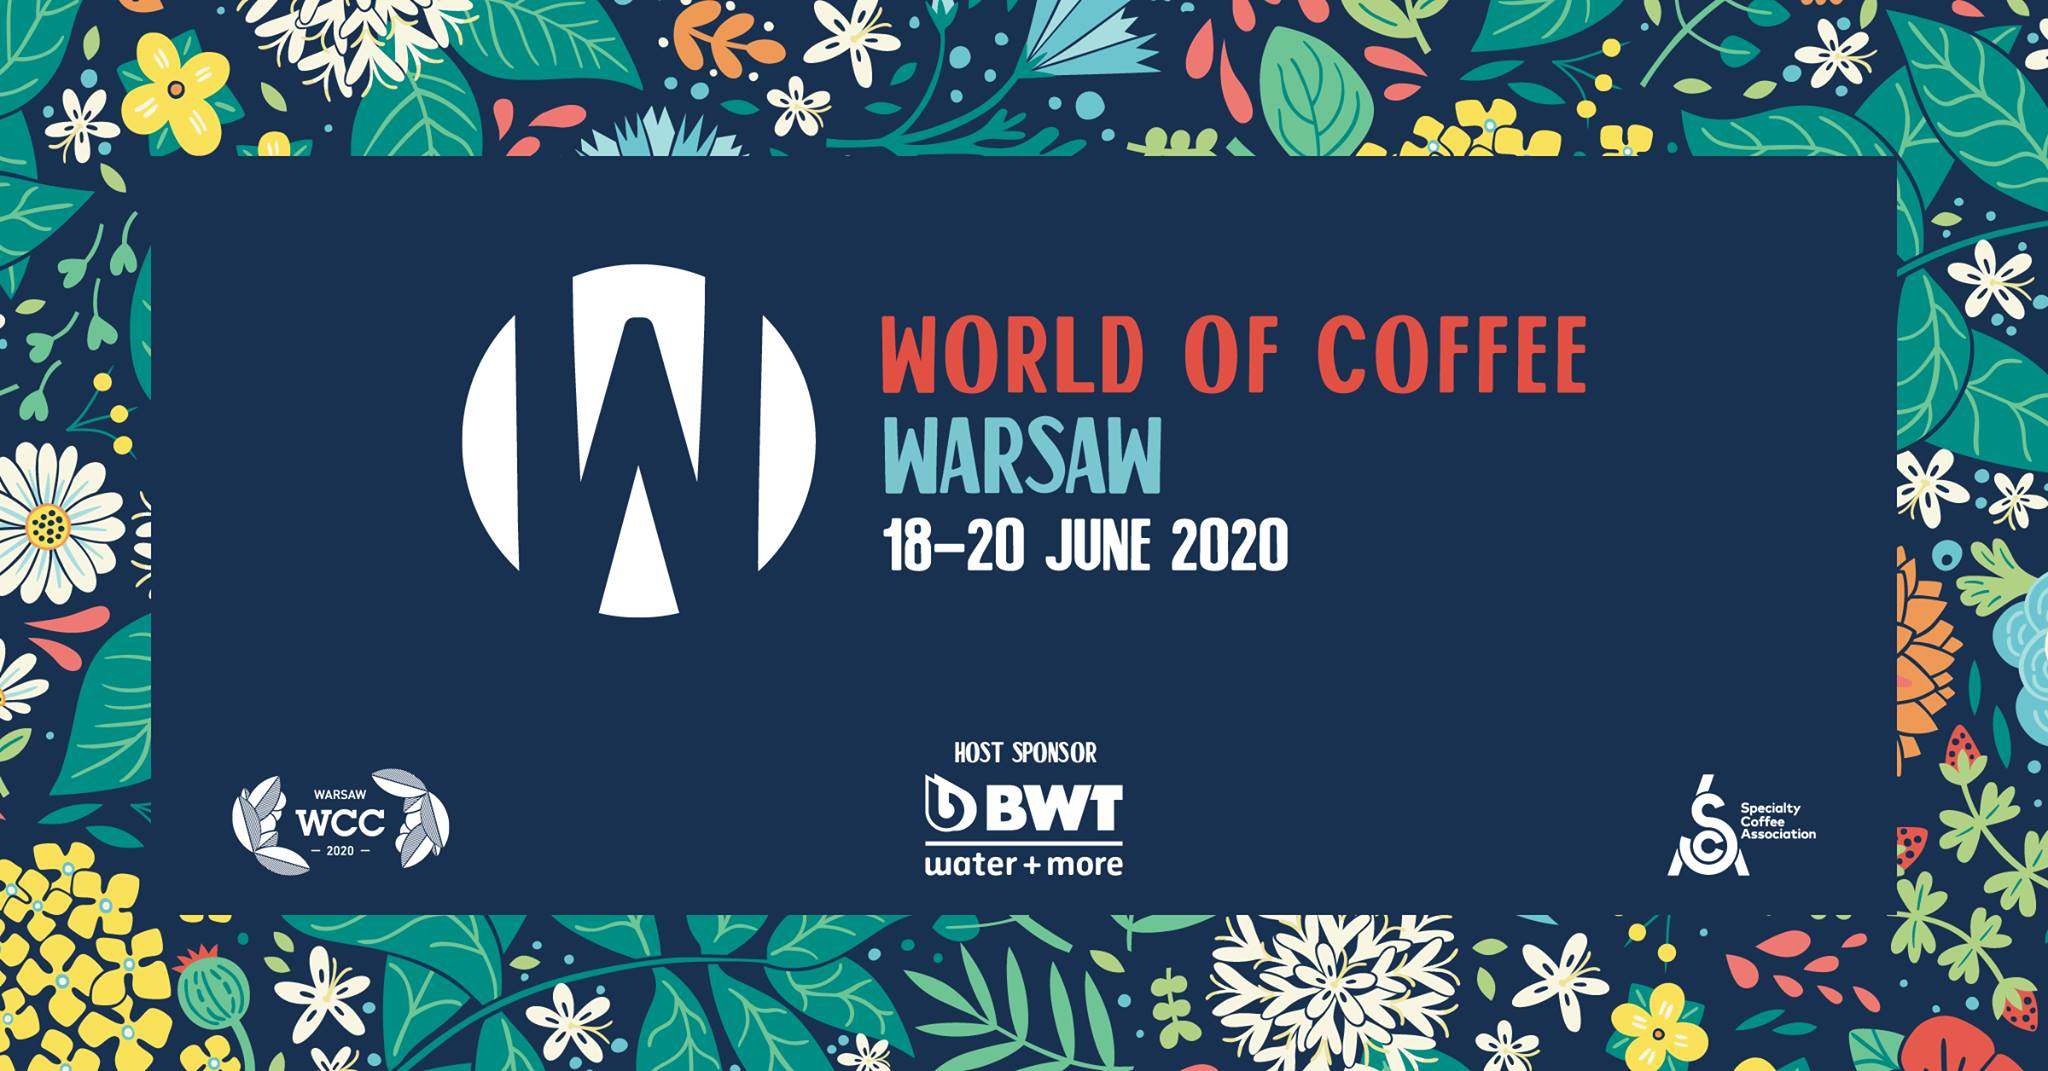 World of Coffee Warsaw 2020